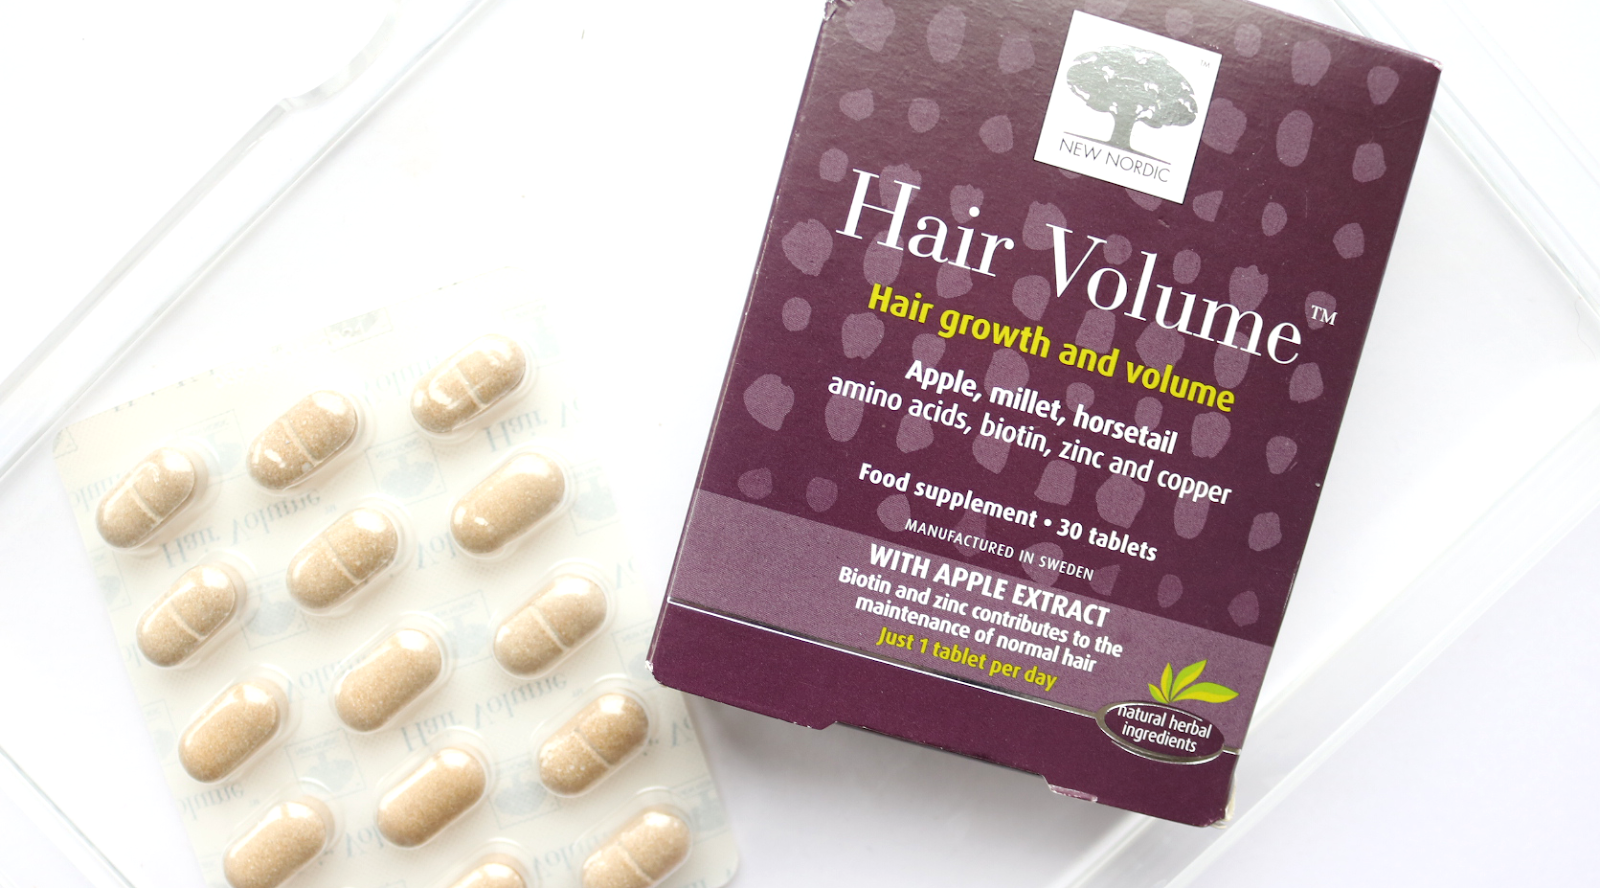 Health & Lifestyle: New Nordic Hair Volume, Hair Volume plus Nail Strong & Hair Volume Gummies - 3 Month Trial Review